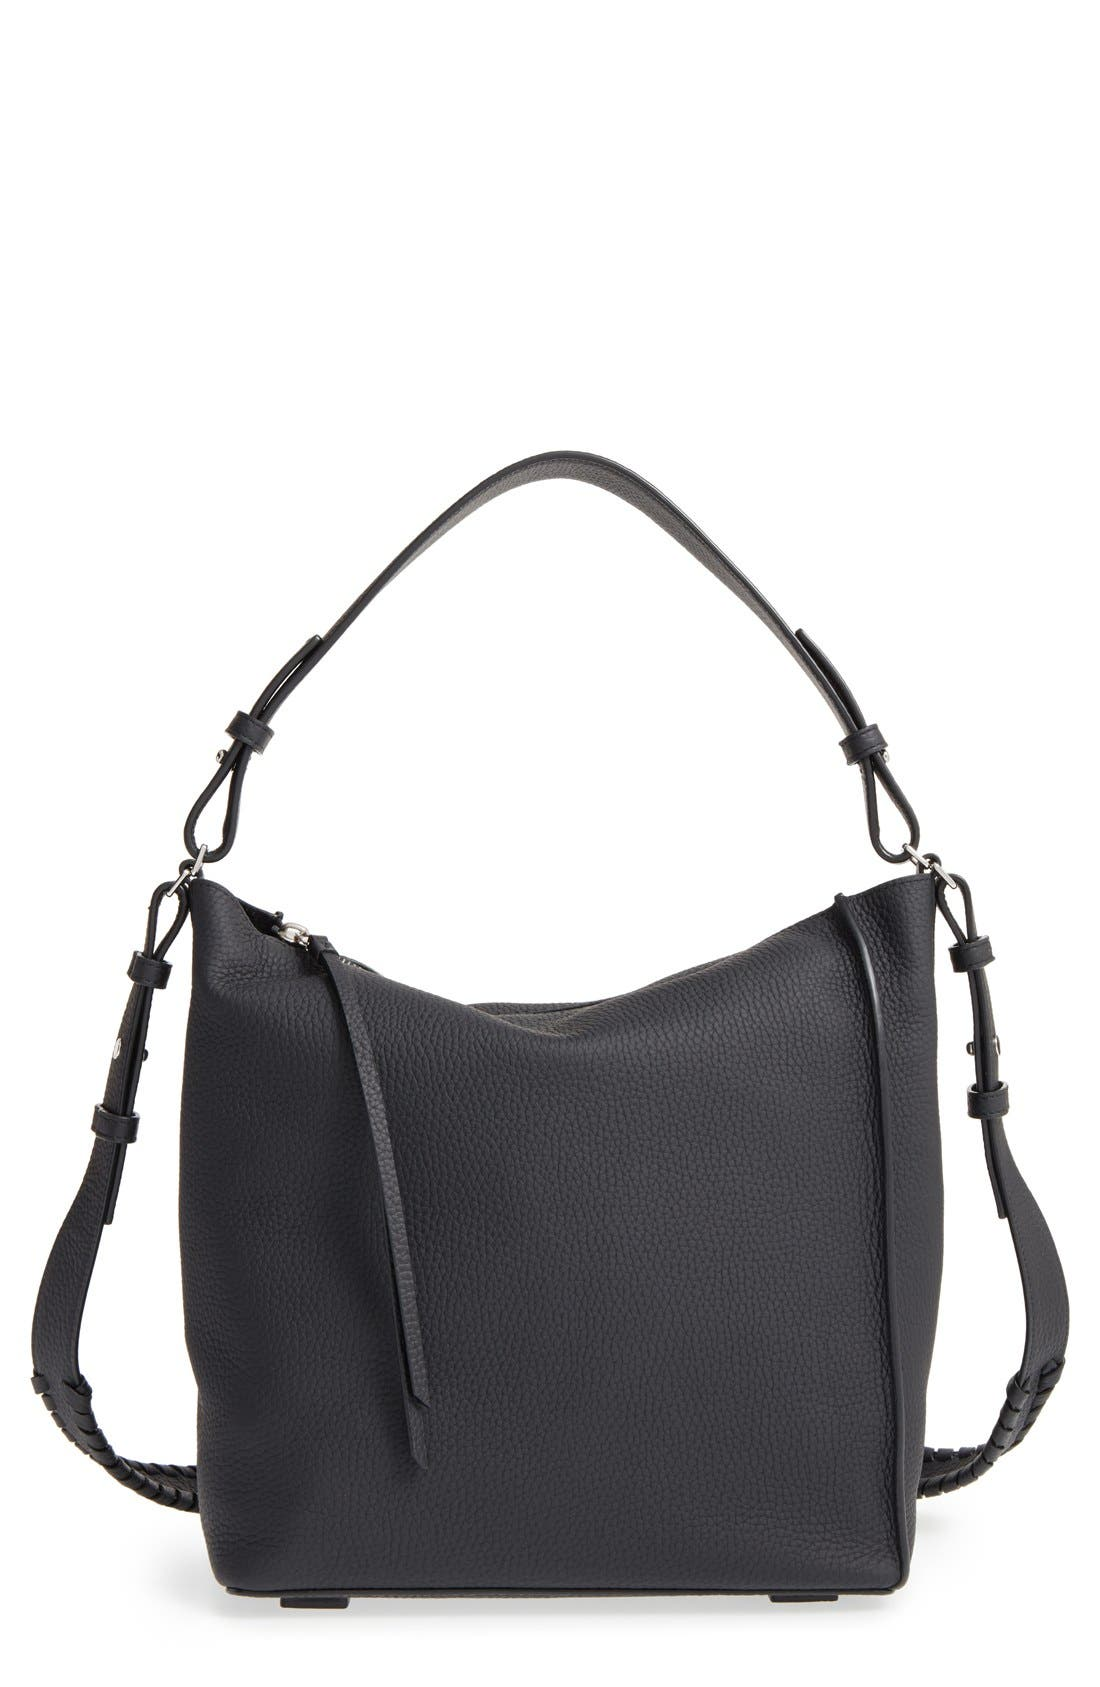 Main Image - ALLSAINTS 'Kita' Leather Shoulder/Crossbody Bag